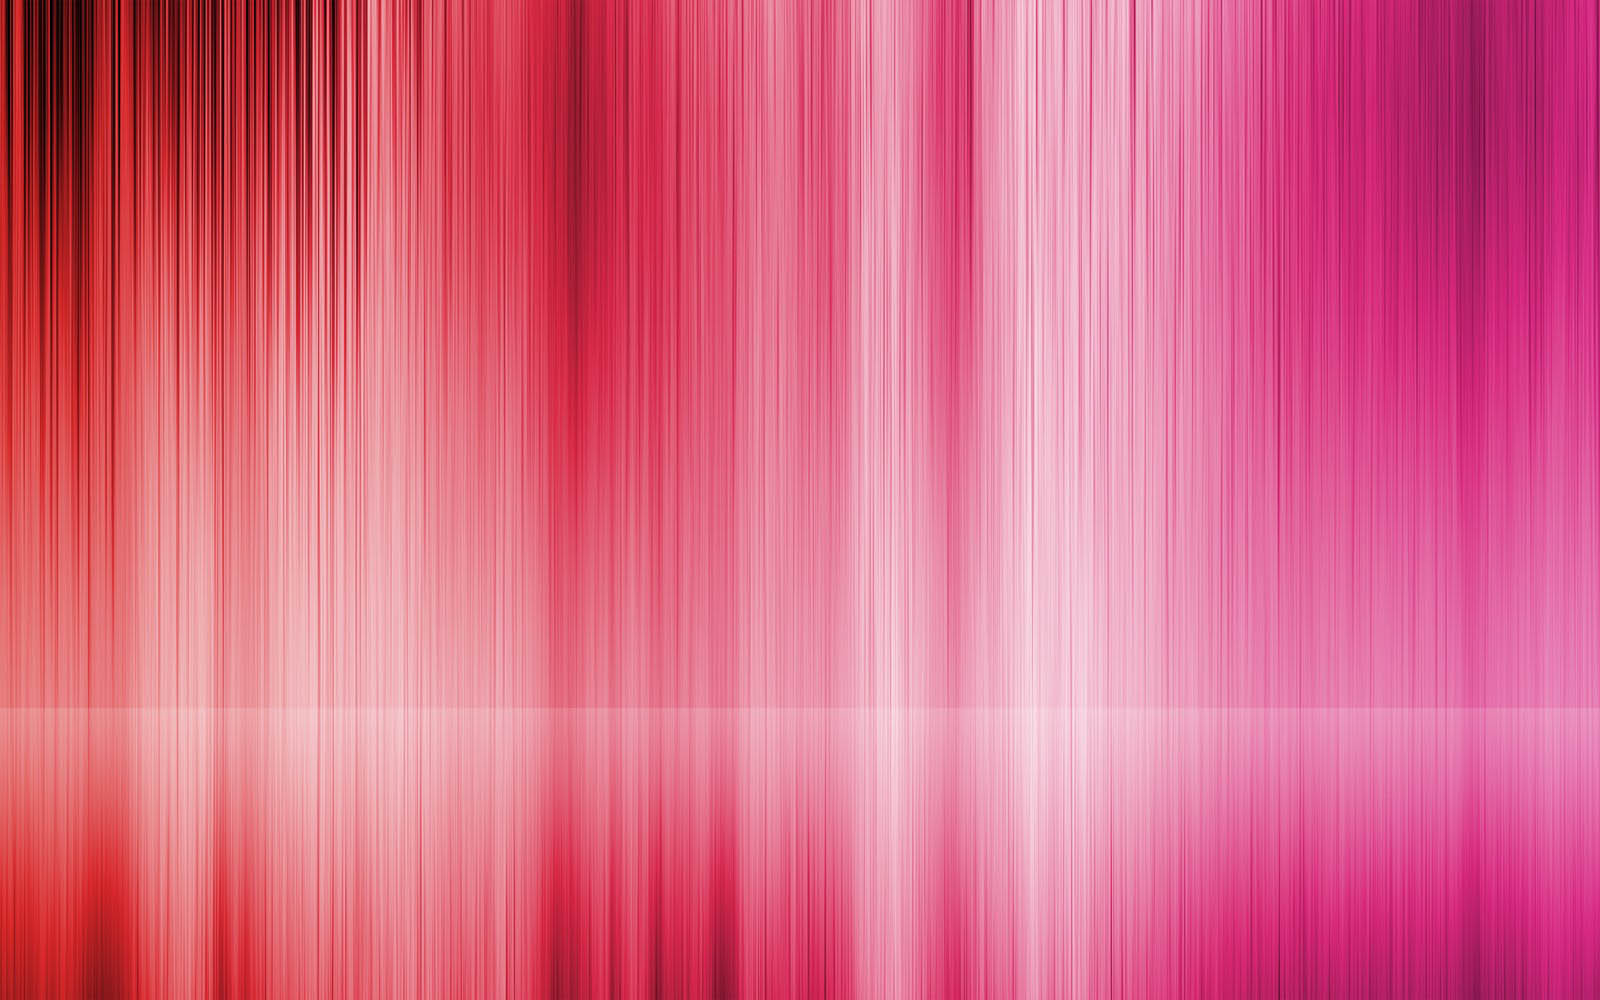 Tag Abstract Pink Wallpapers Backgrounds Paos Pictures and Images 1600x1000